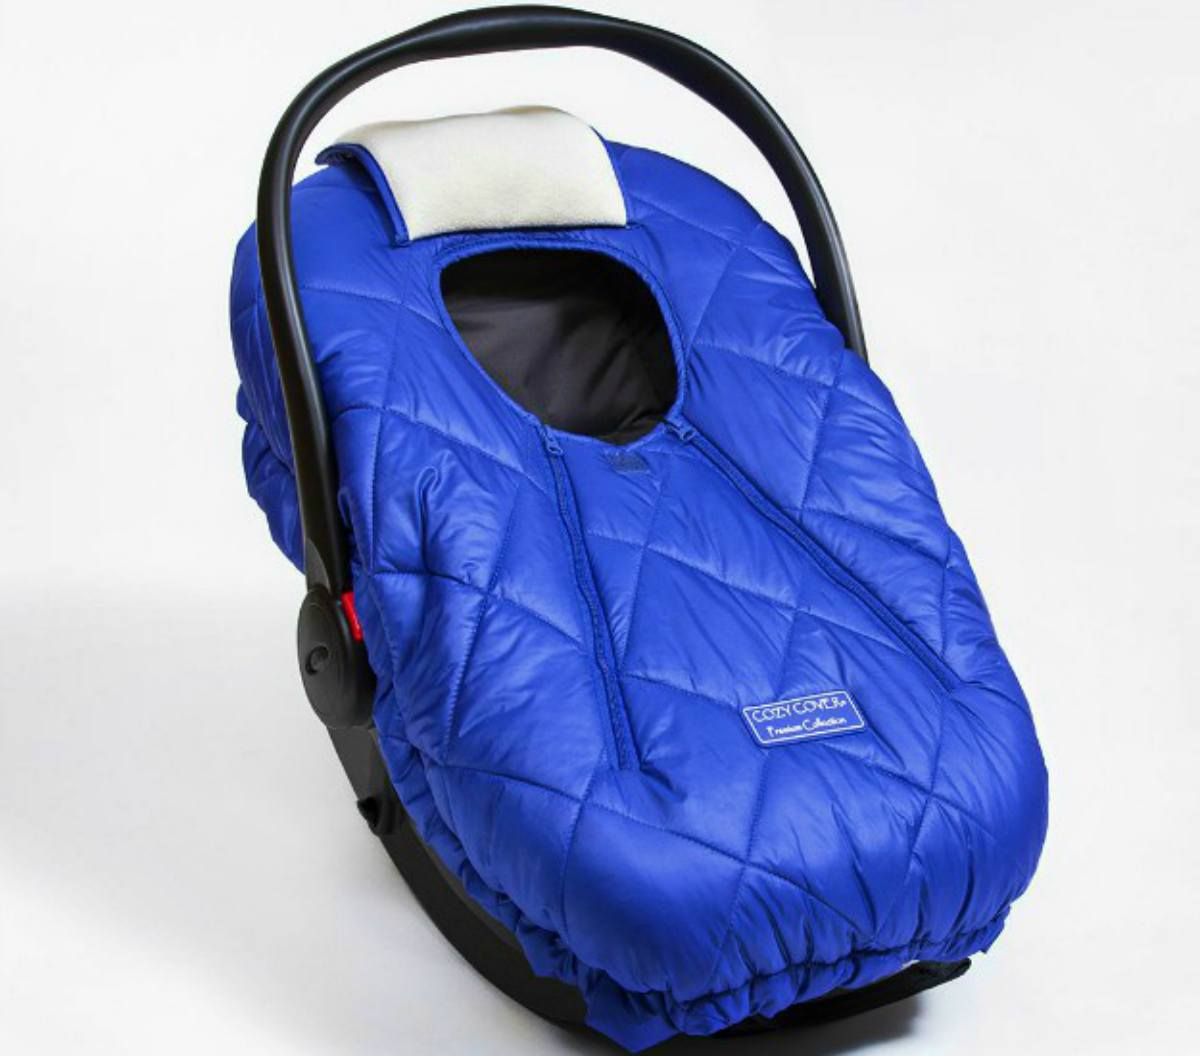 Blue Cozy Cover Premium Infant Car Seat Carrier Cover for baby | Christmas Gift Ideas For Dad | baby first christmas gift ideas